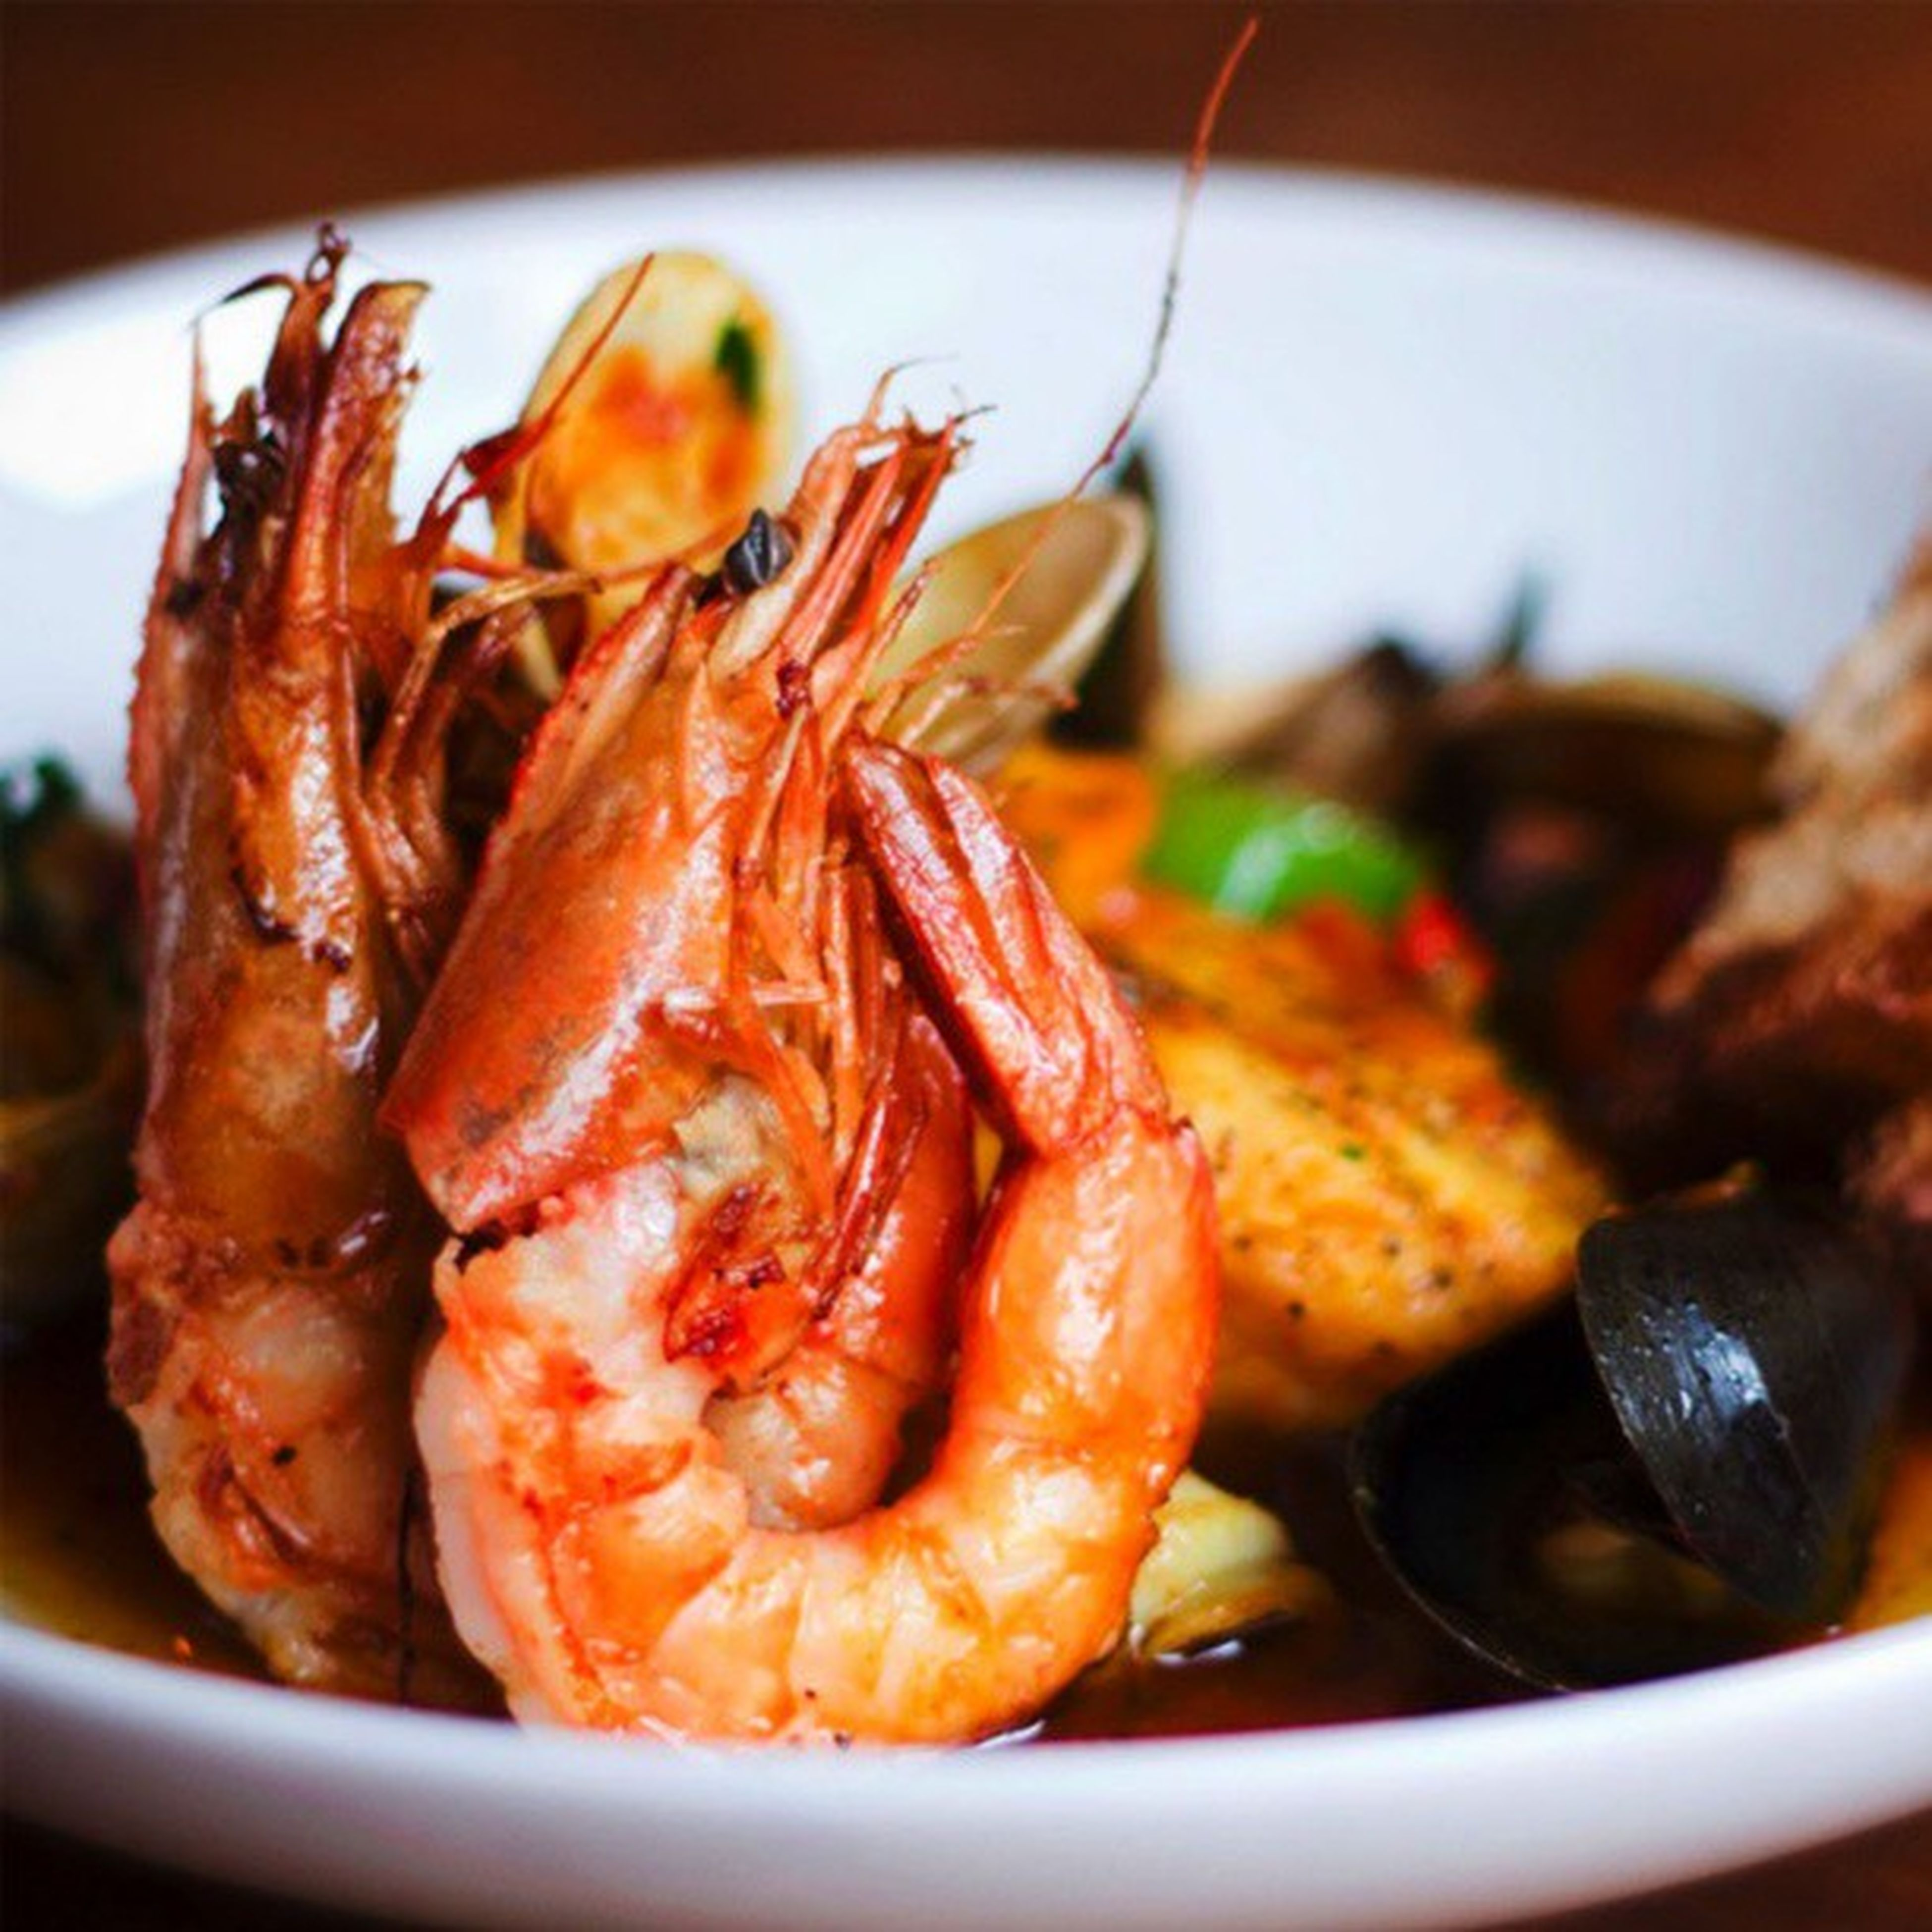 food and drink, food, indoors, freshness, close-up, seafood, healthy eating, plate, still life, ready-to-eat, meal, serving size, selective focus, meat, focus on foreground, prawn, shrimp, indulgence, served, cooked